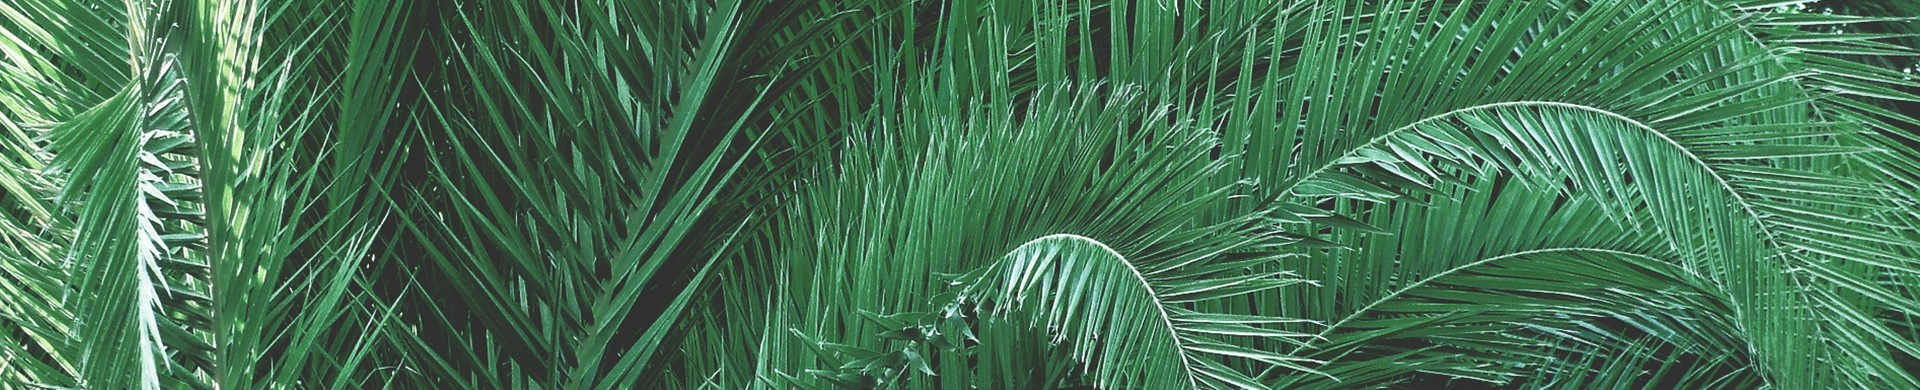 Buy Palm trees - Sale of palm trees online - Palm trees plant